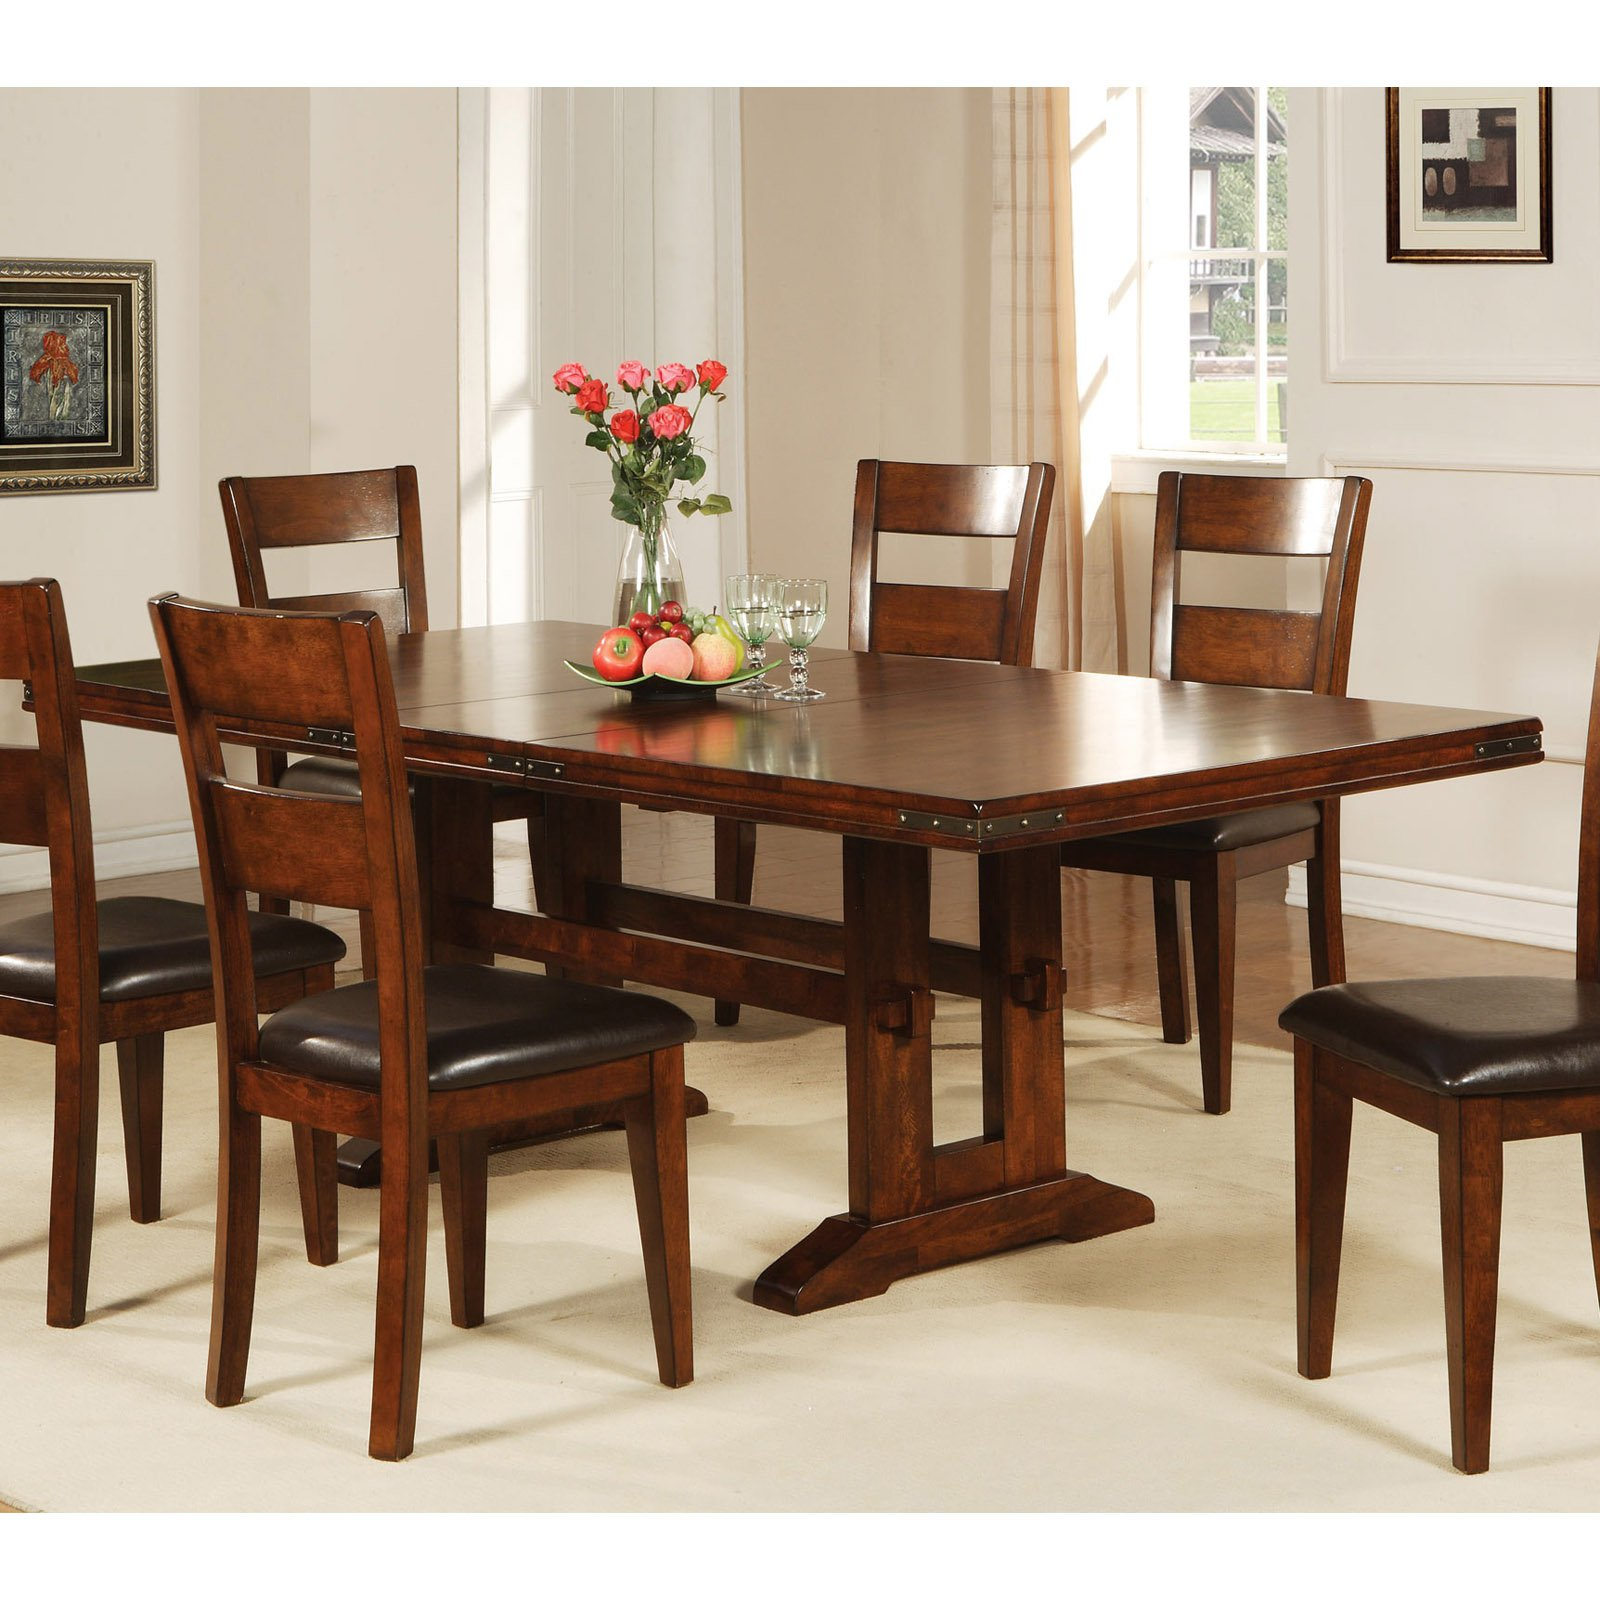 Winners ly Mango 74 in Trestle Dining Table with 18 in